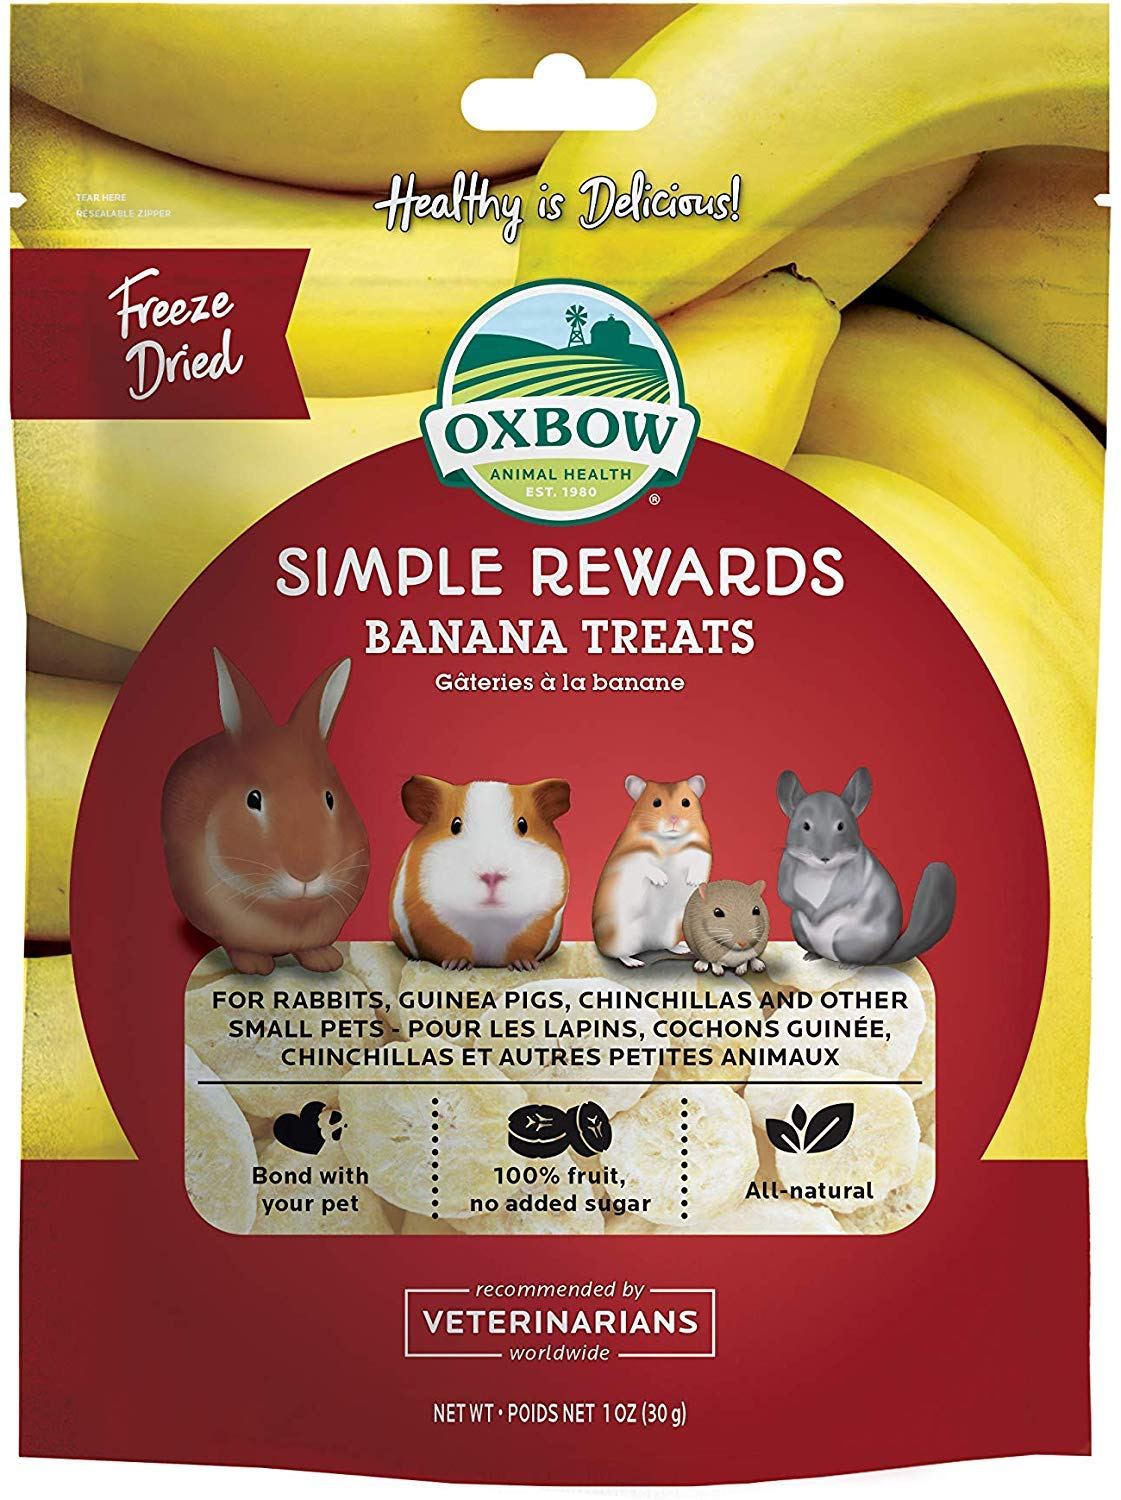 Oxbow Pack of Twelve Simple Rewards Treats - Rabbits Guinea Pigs Chinchillas Banana 1 oz by Oxbow